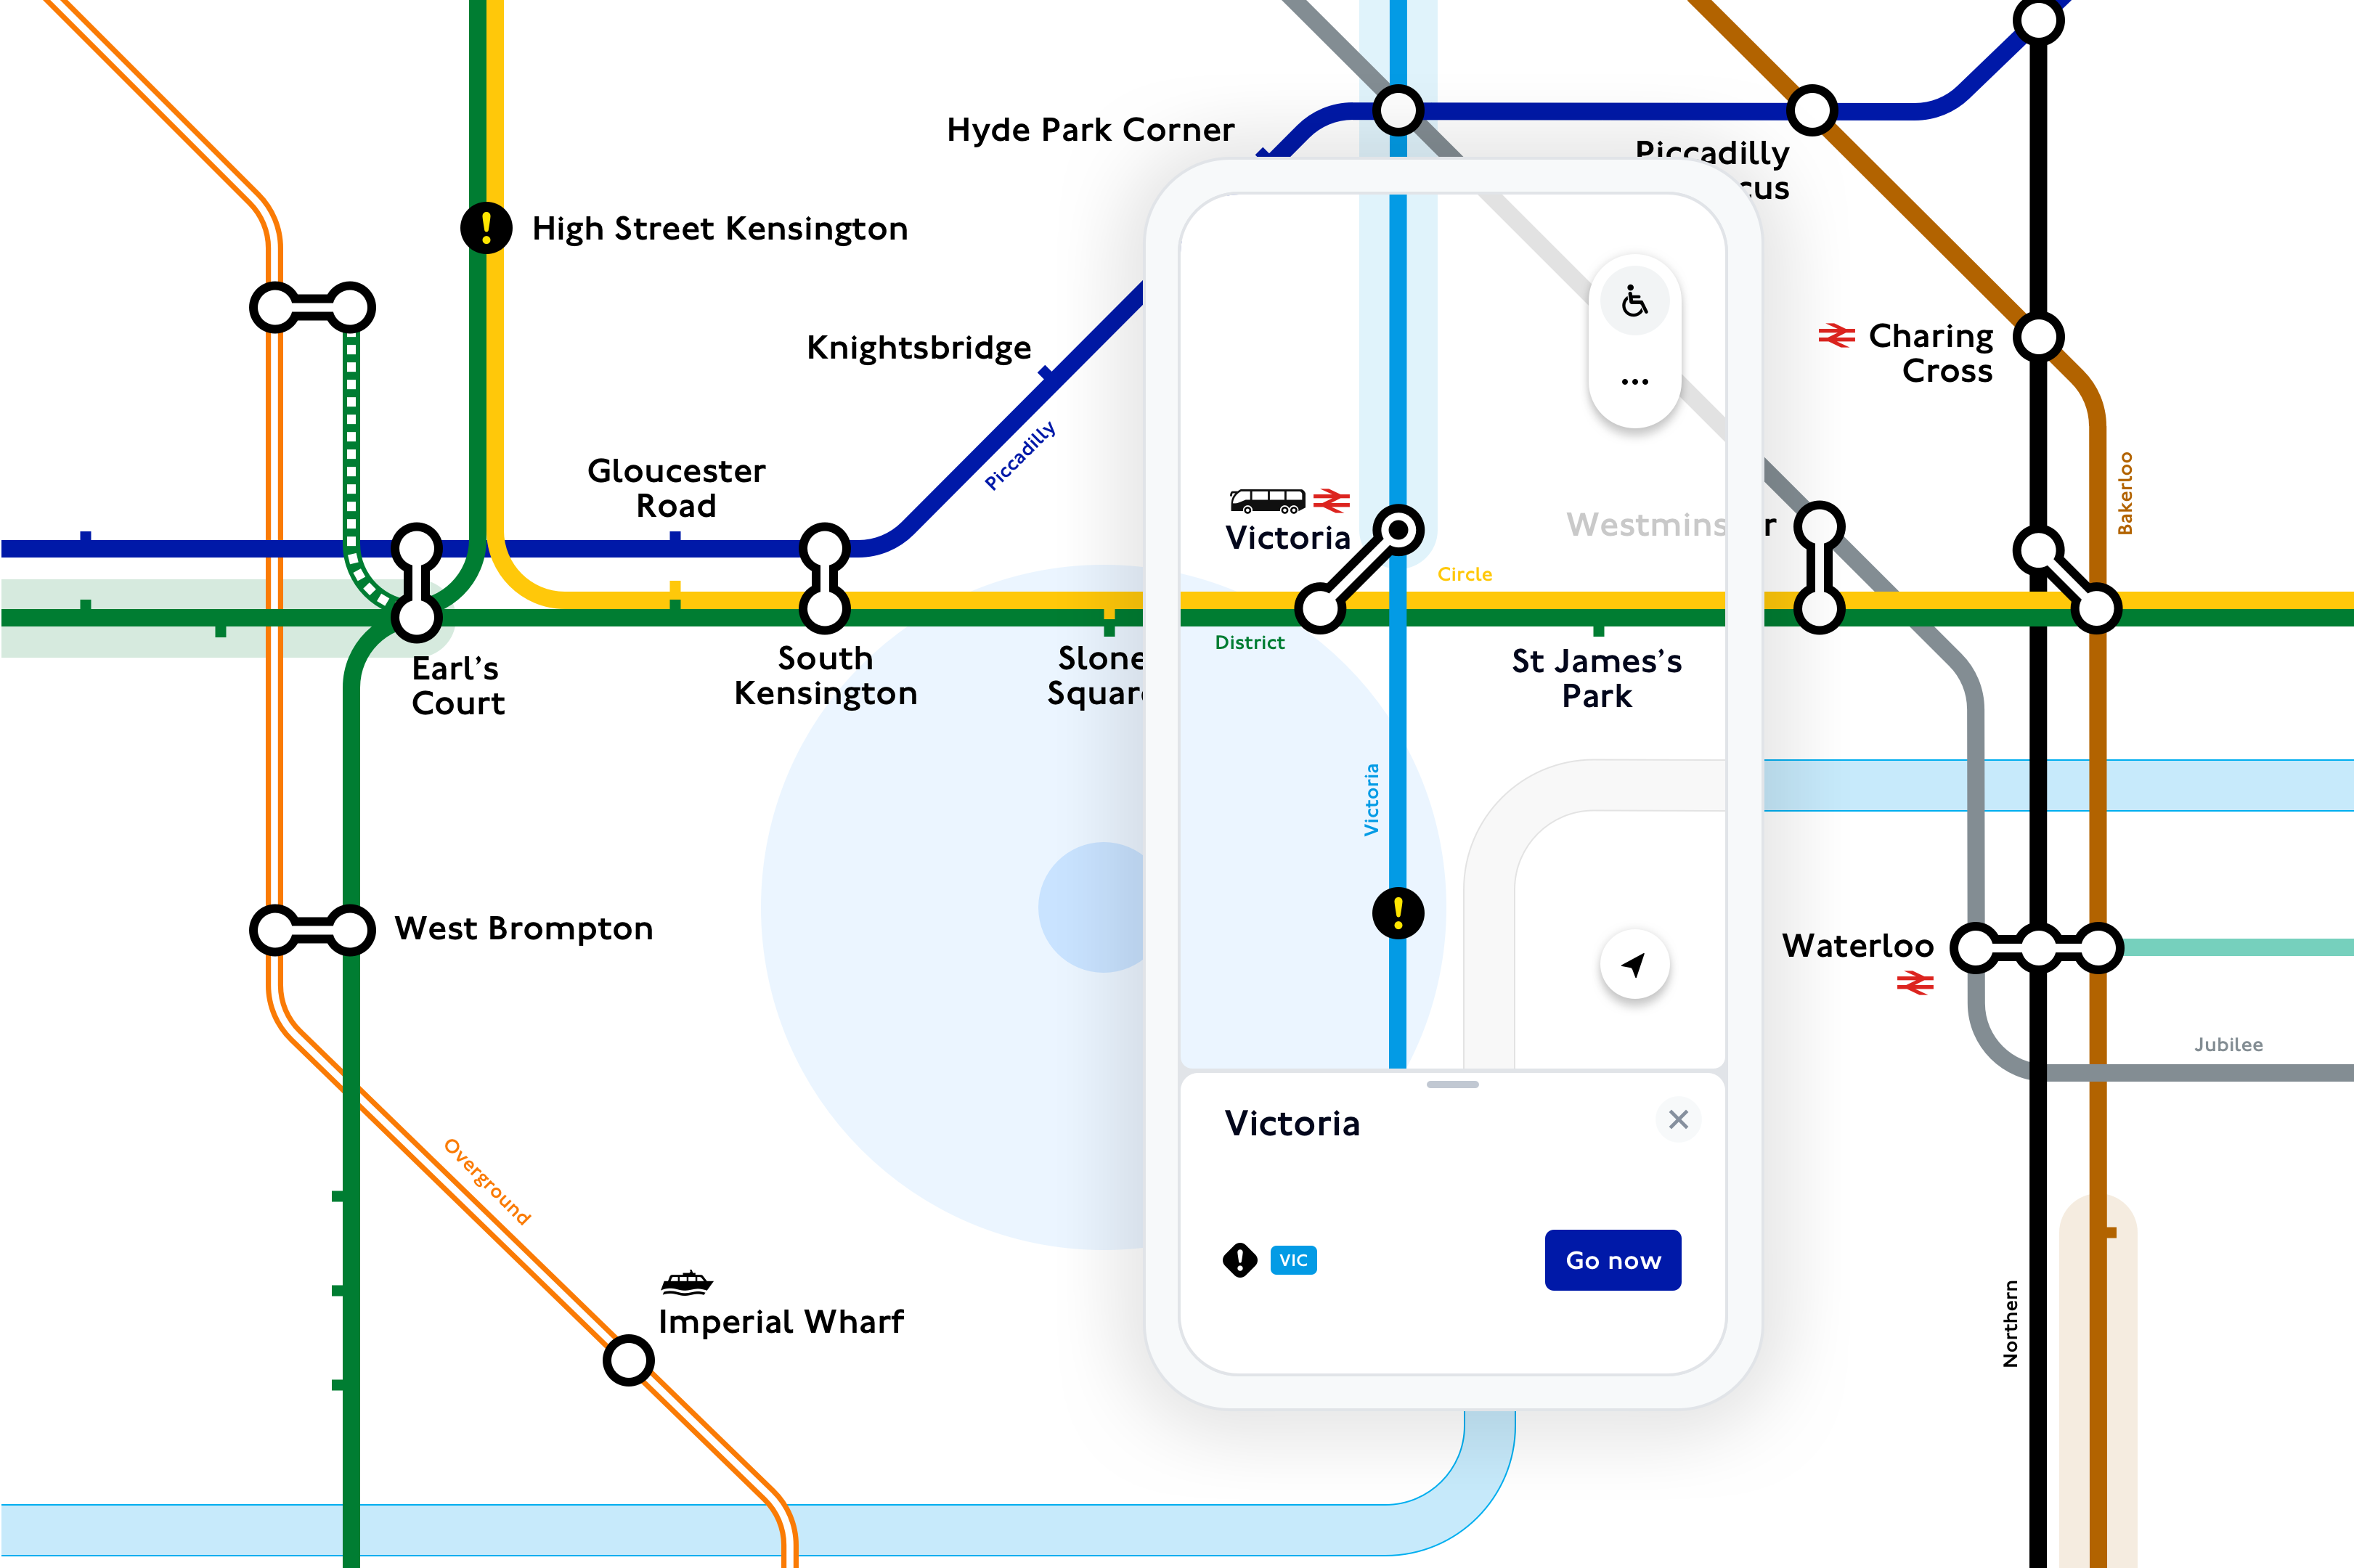 An image of the live, digital Tube map in TfL Go